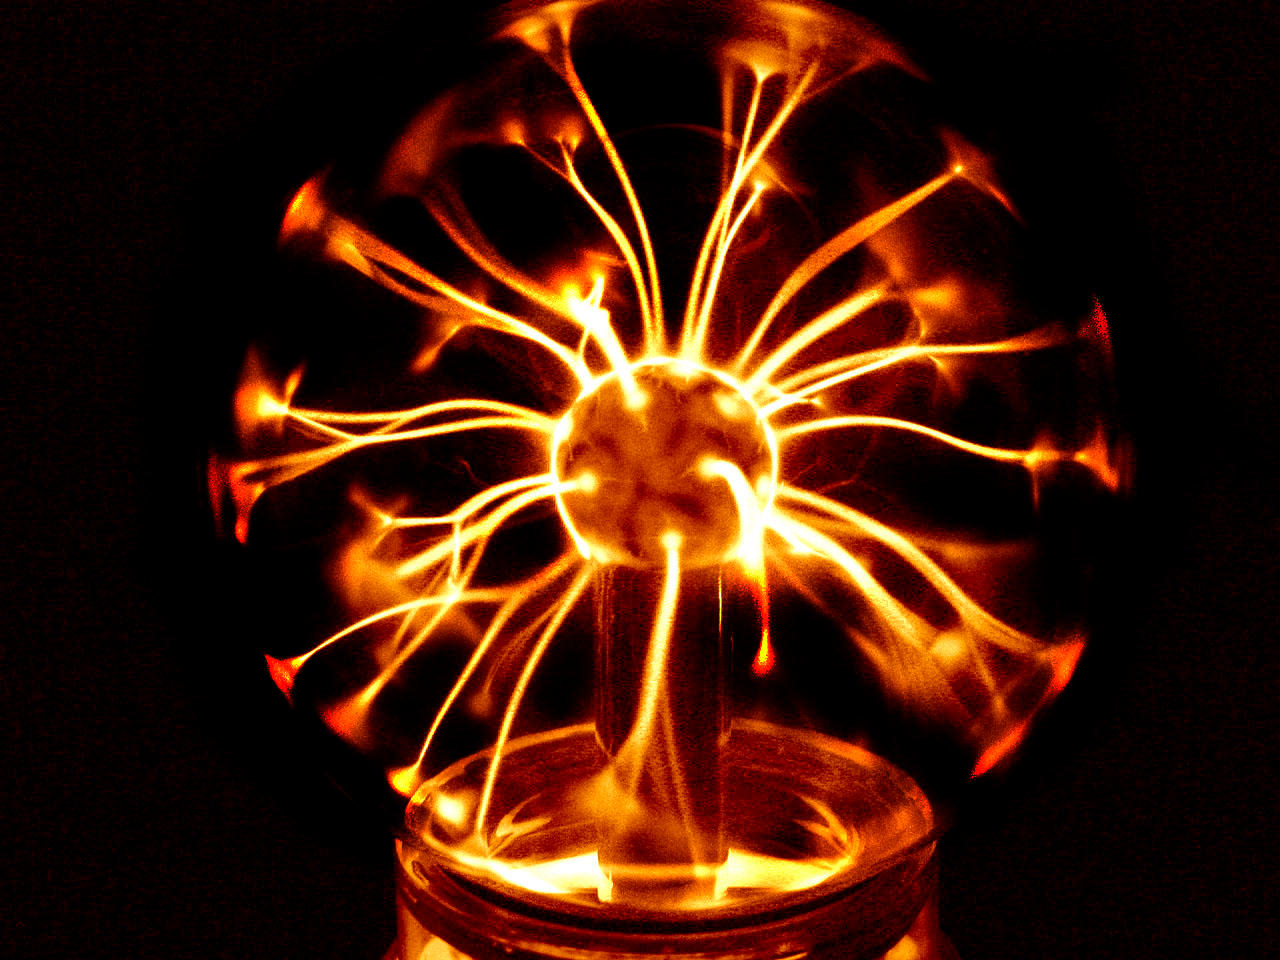 The Electric Fire Ball By Uani On Deviantart